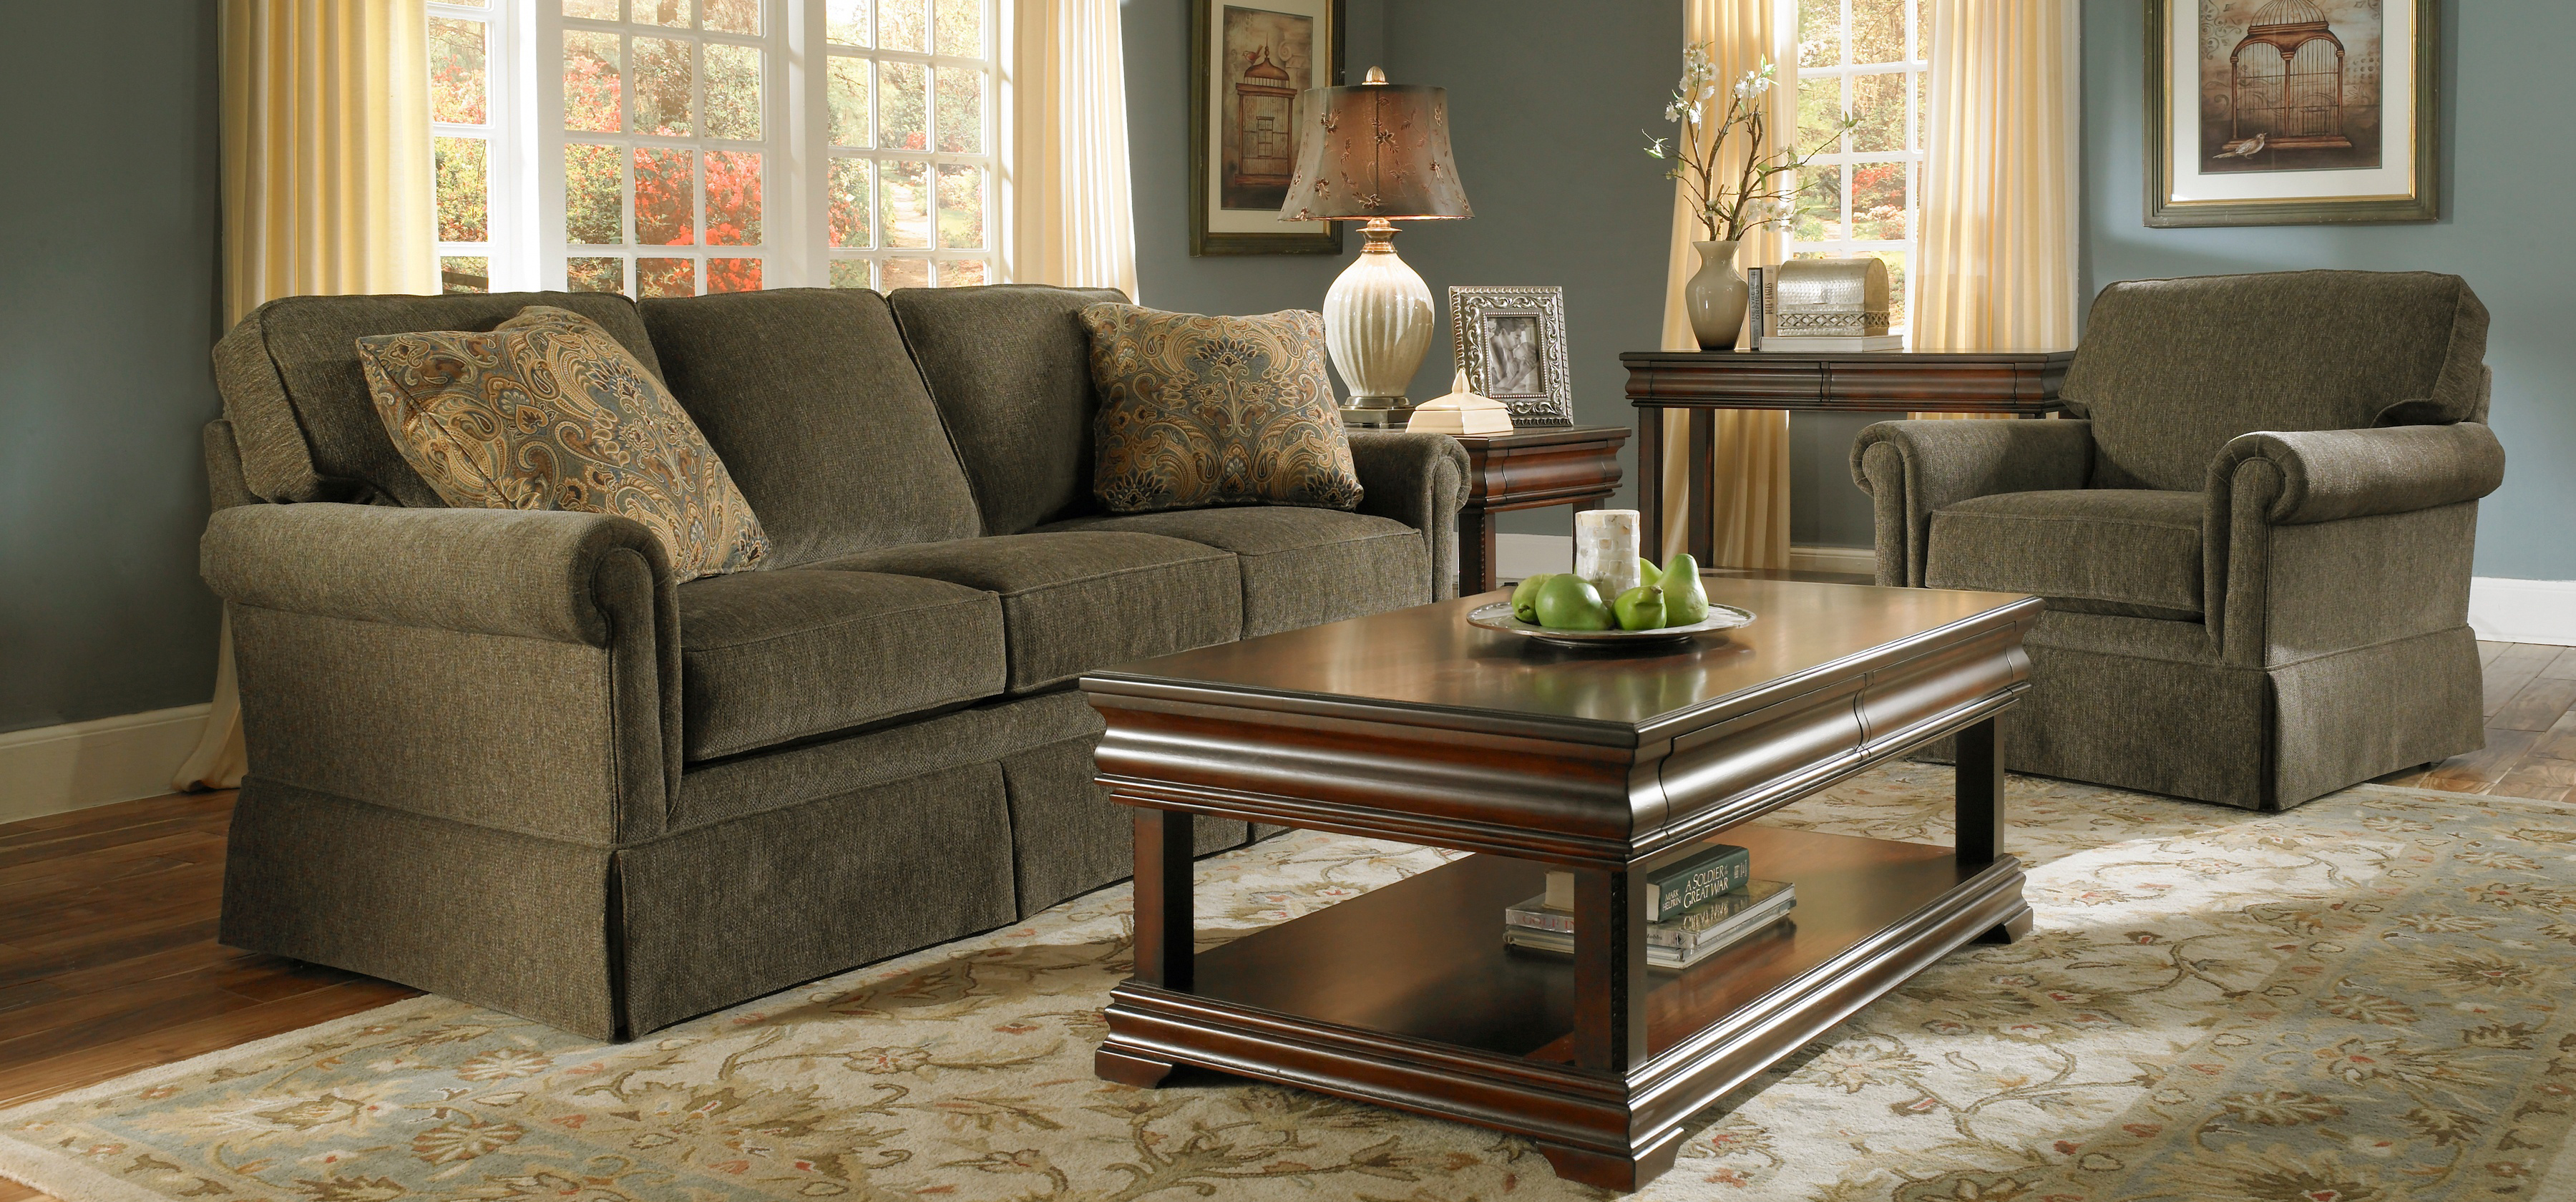 broyhillaudreybanner jordan furniture. Black Bedroom Furniture Sets. Home Design Ideas